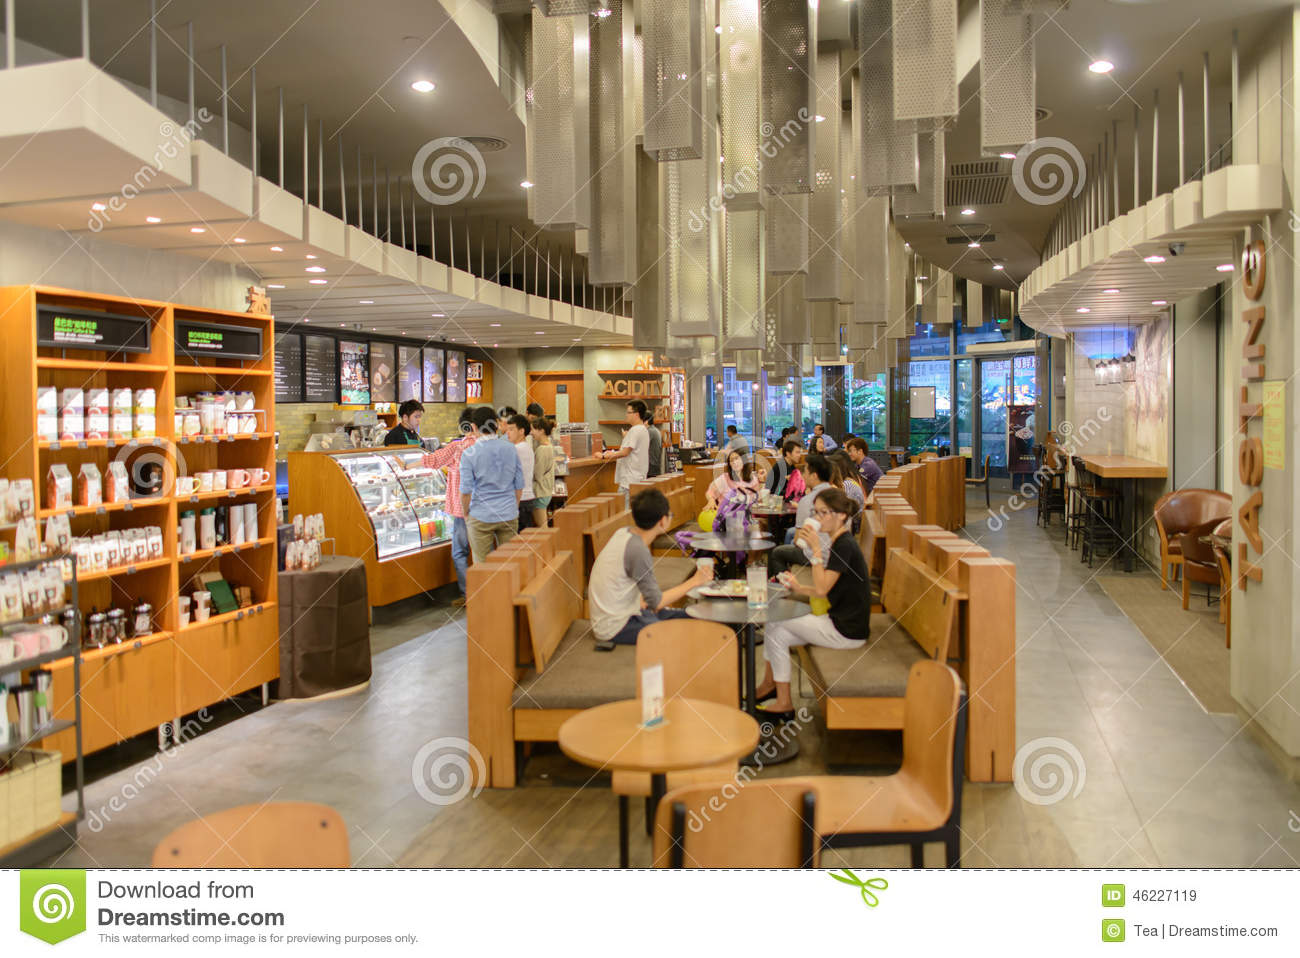 https://thumbs.dreamstime.com/z/starbucks-cafe-interior-shenzhen-china-april-april-shenzhen-china-corporation-american-global-coffee-company-46227119.jpg